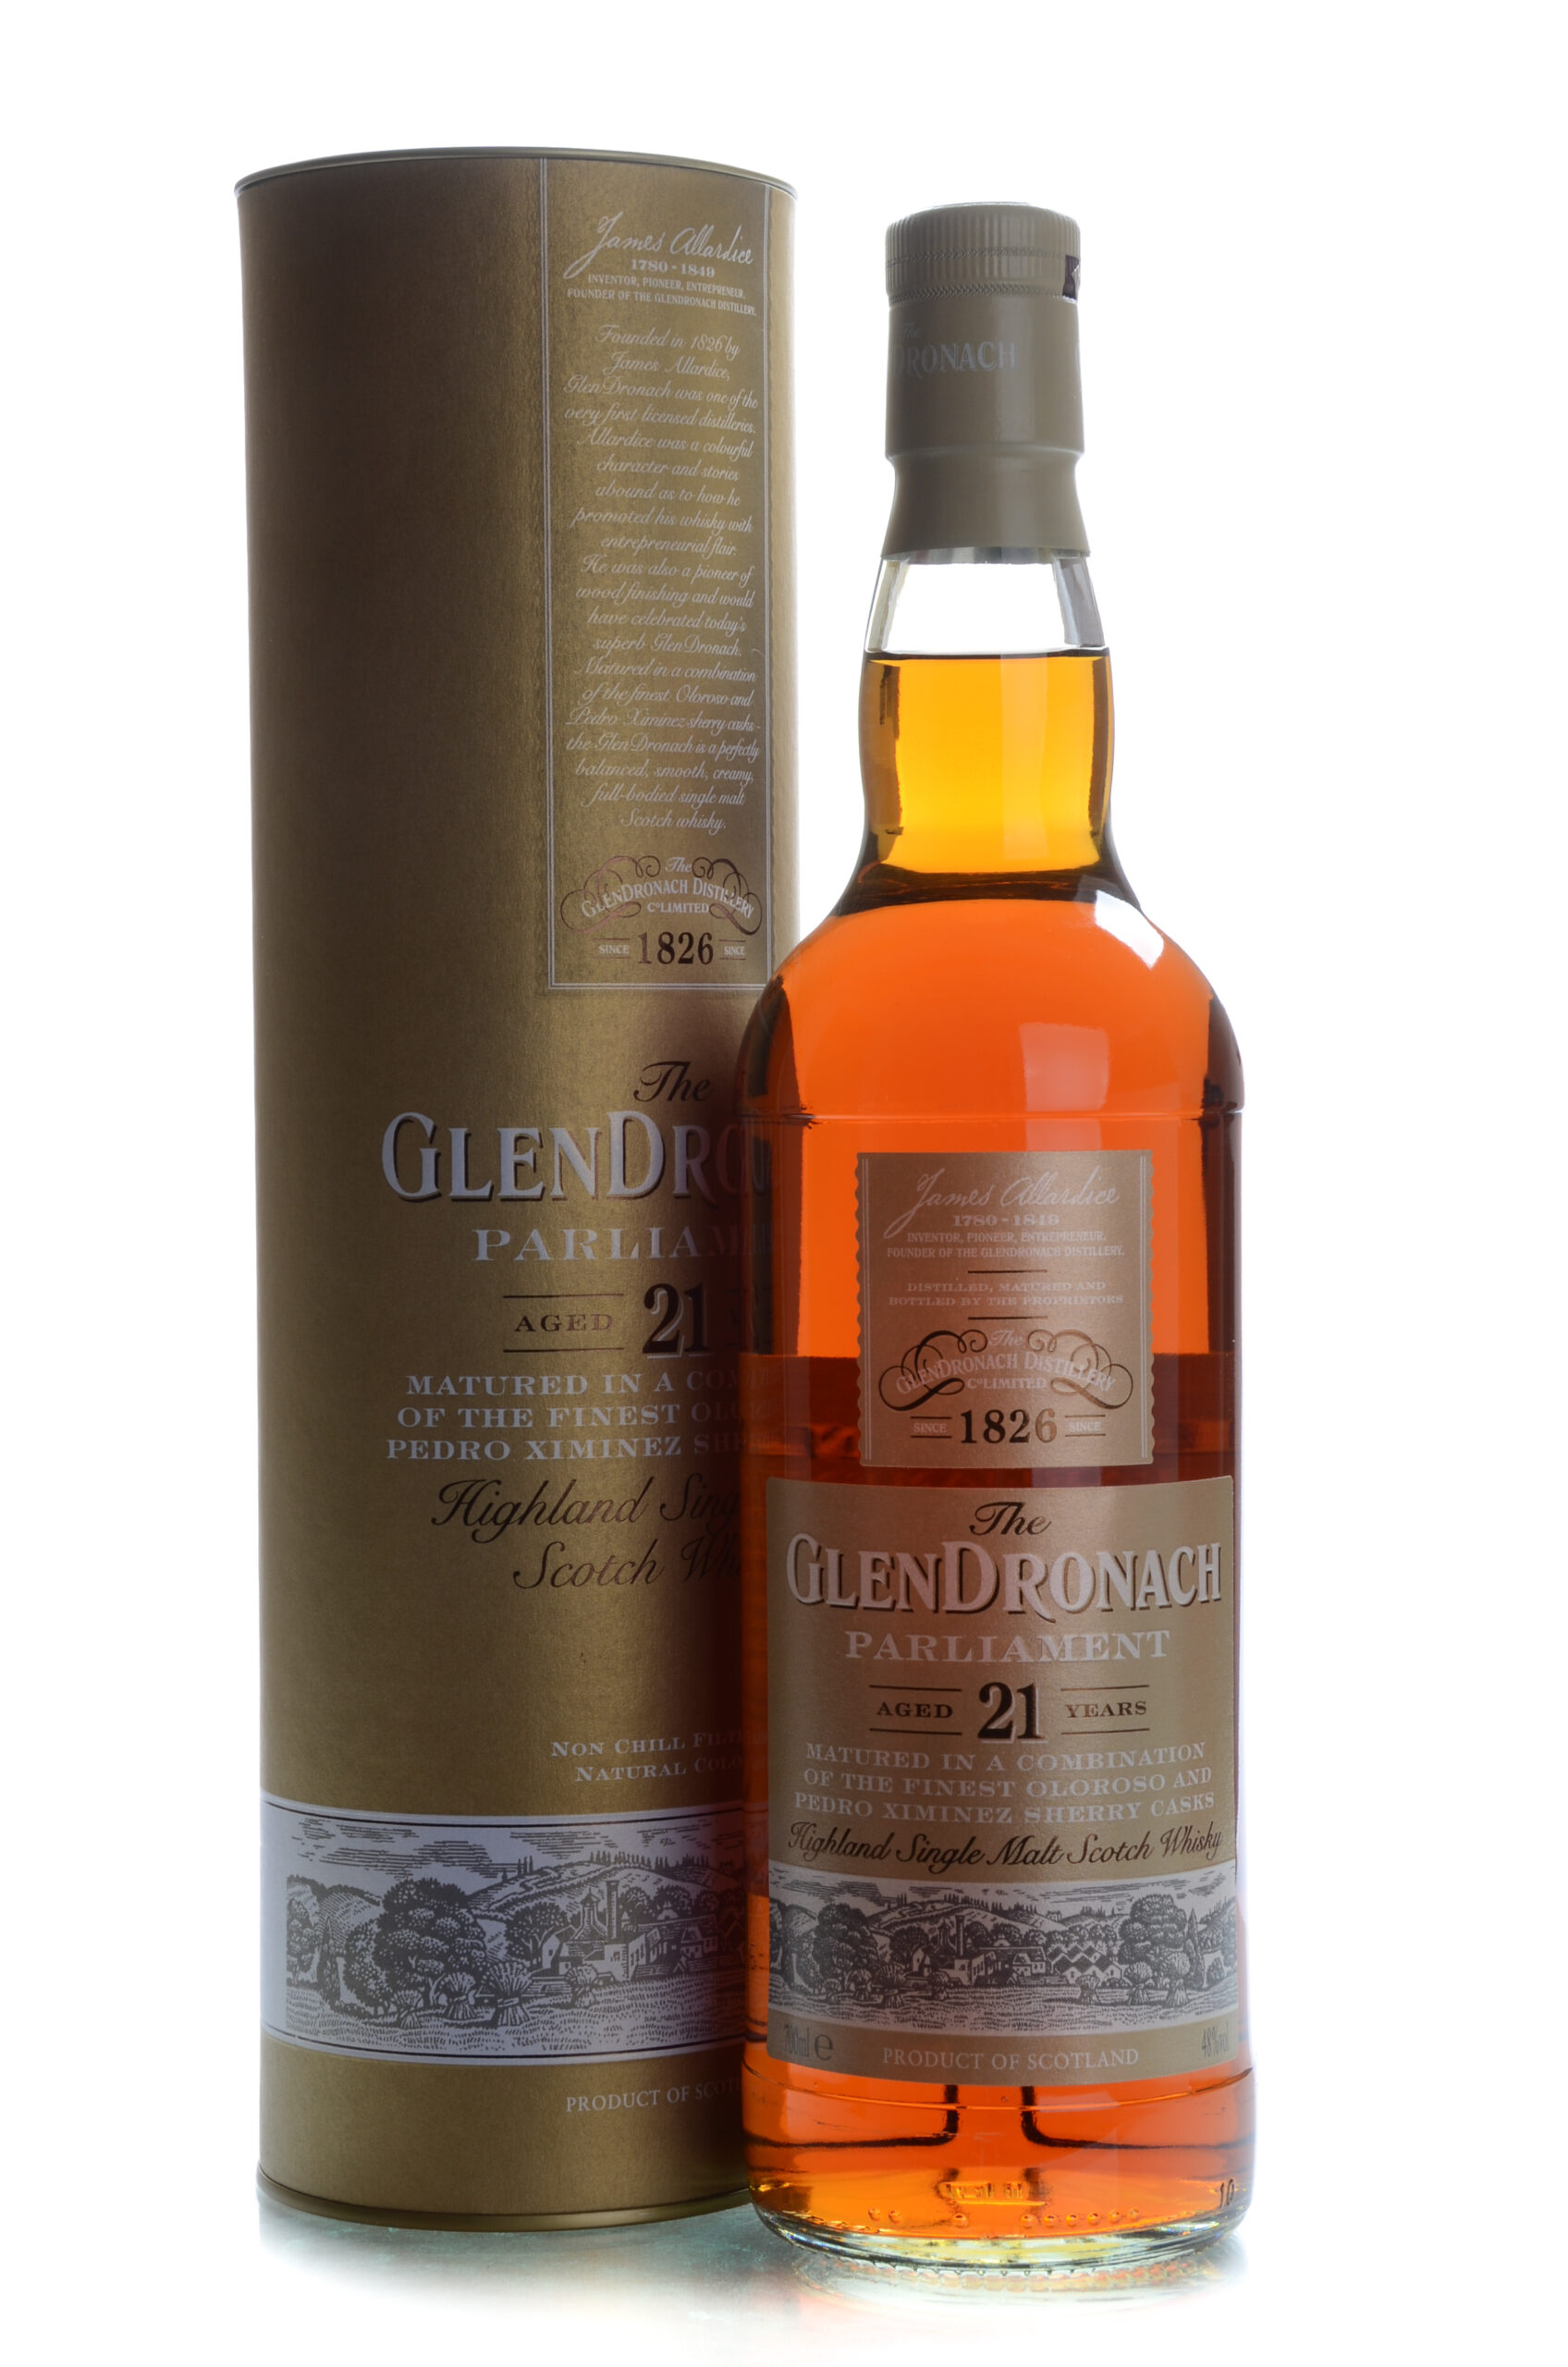 The Glendronach Parliament 21 years